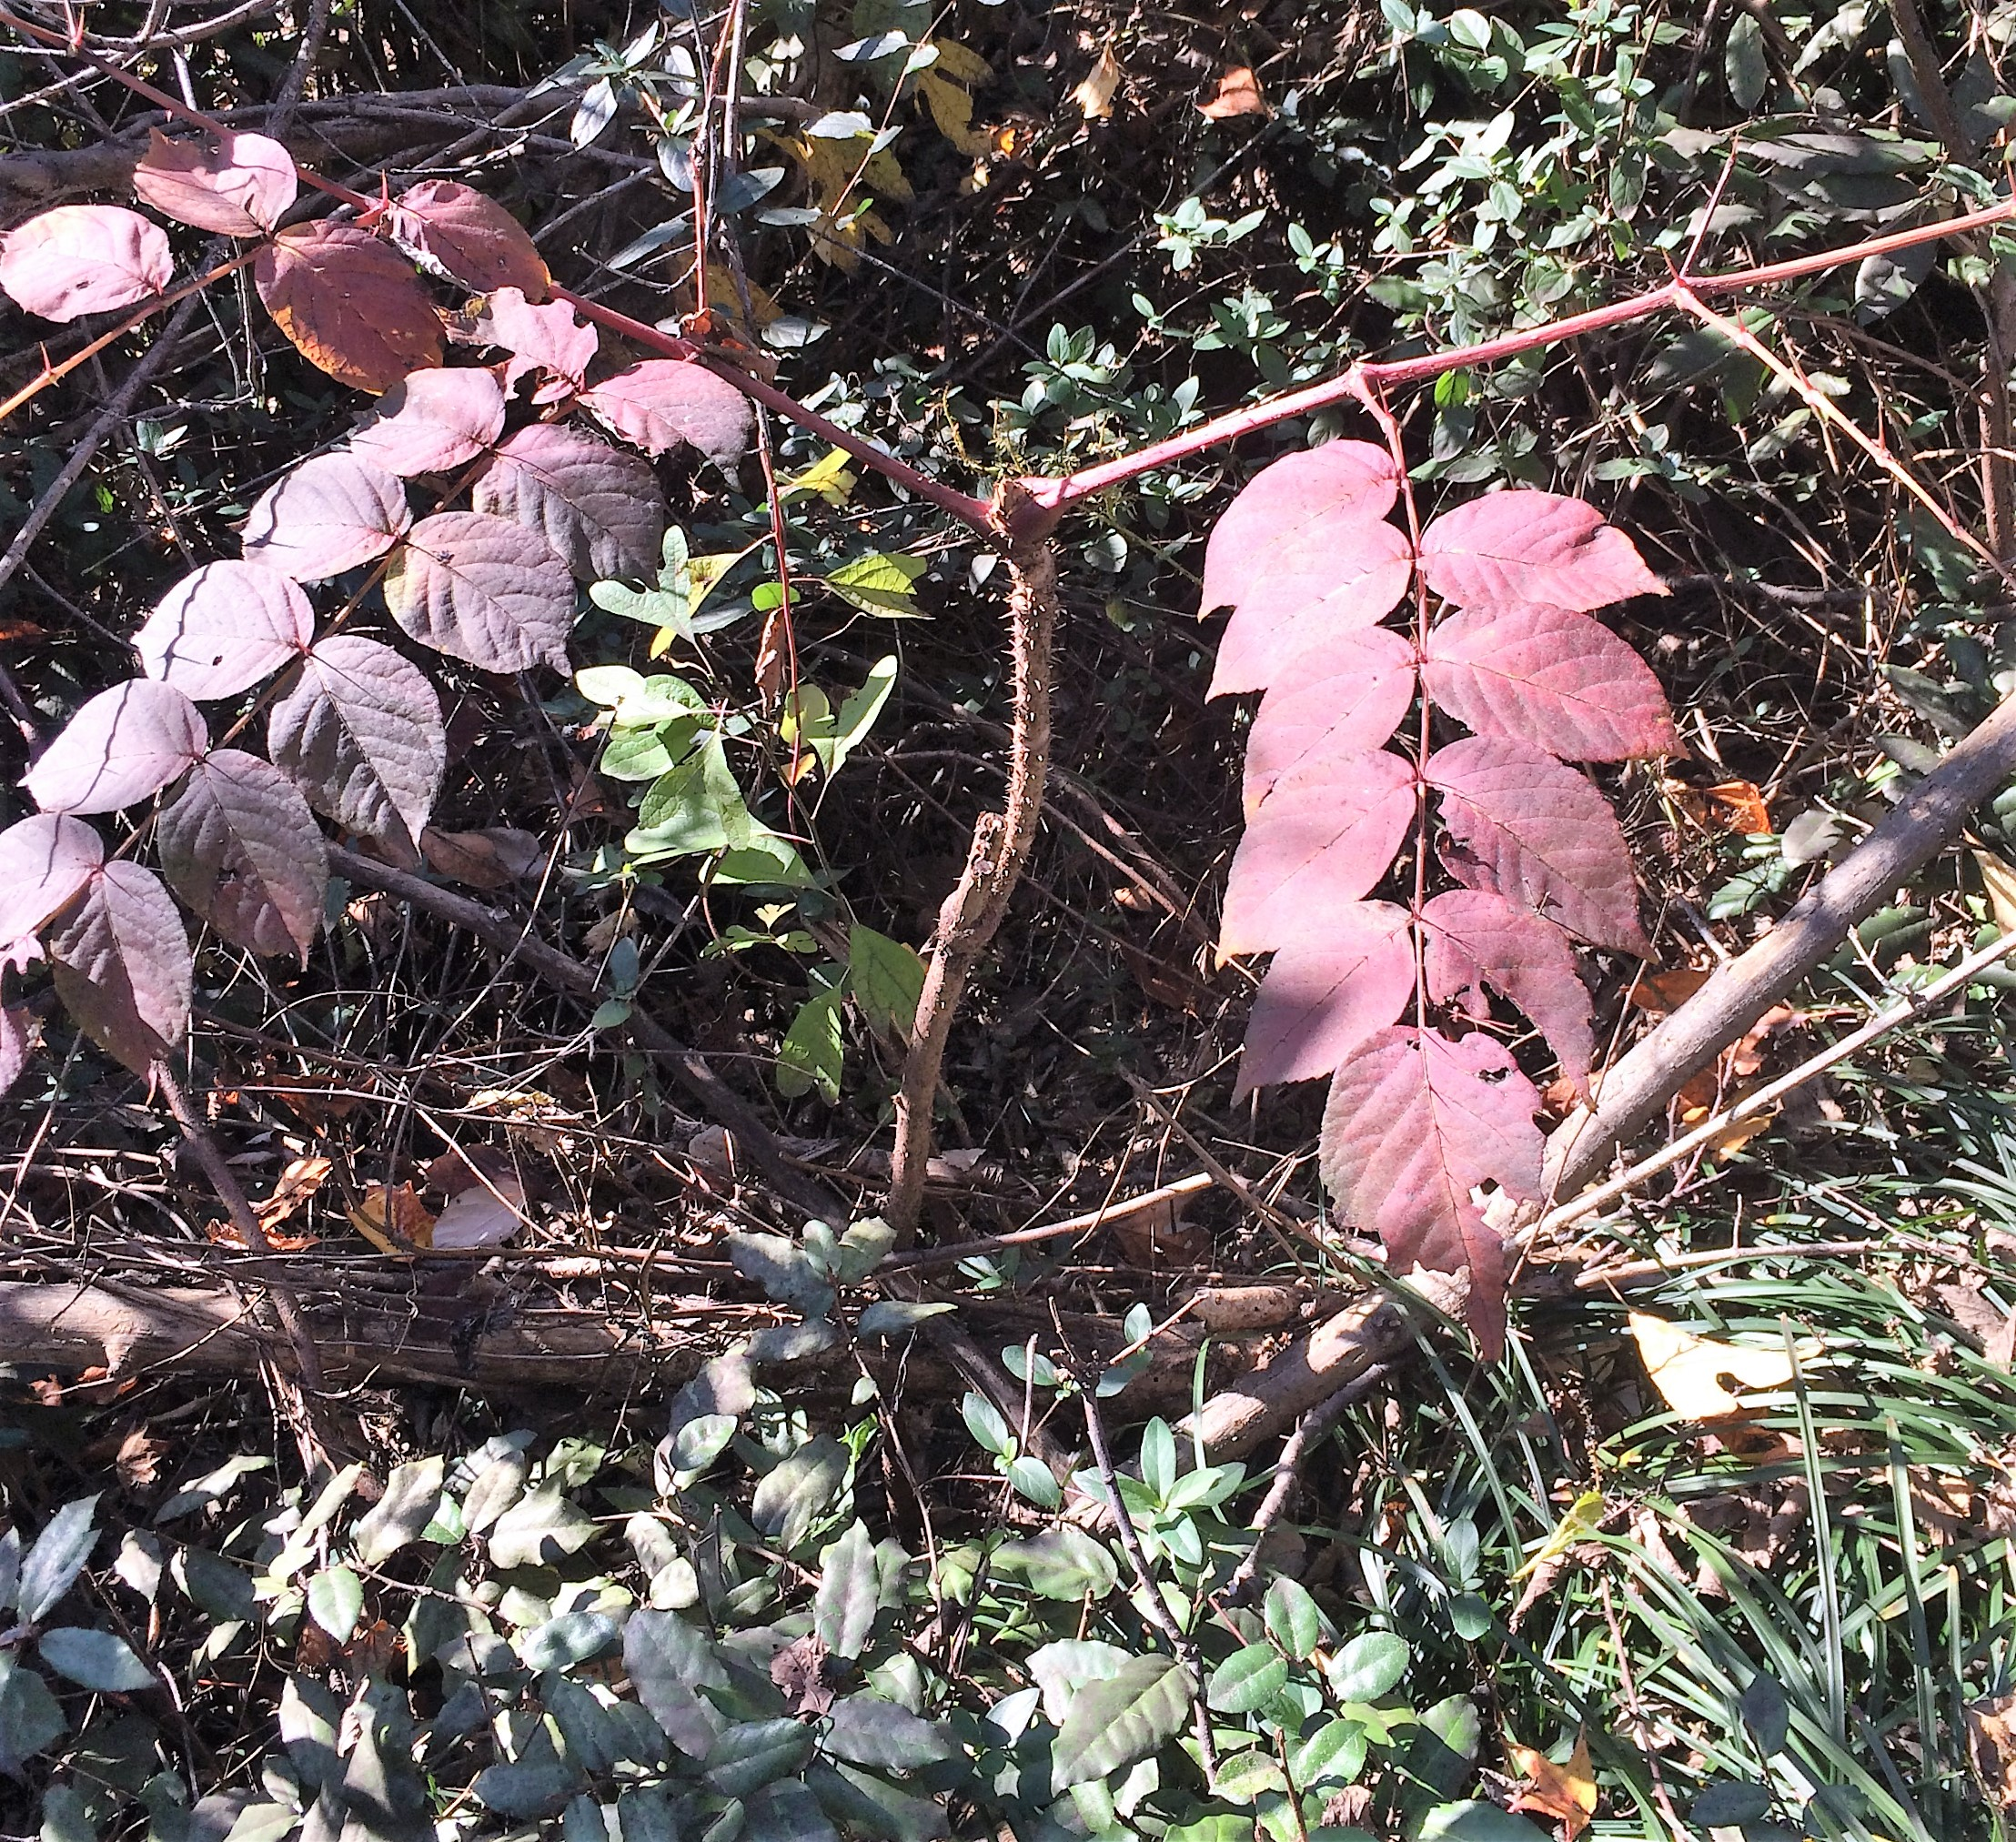 Shrubs with purple flowers at end of branch - Alternate Red Purple Shrub With Leaves Twice Thrice Pinnately Compound With Toothed Leaflets Long Stem And Twigs Having Many Thorns